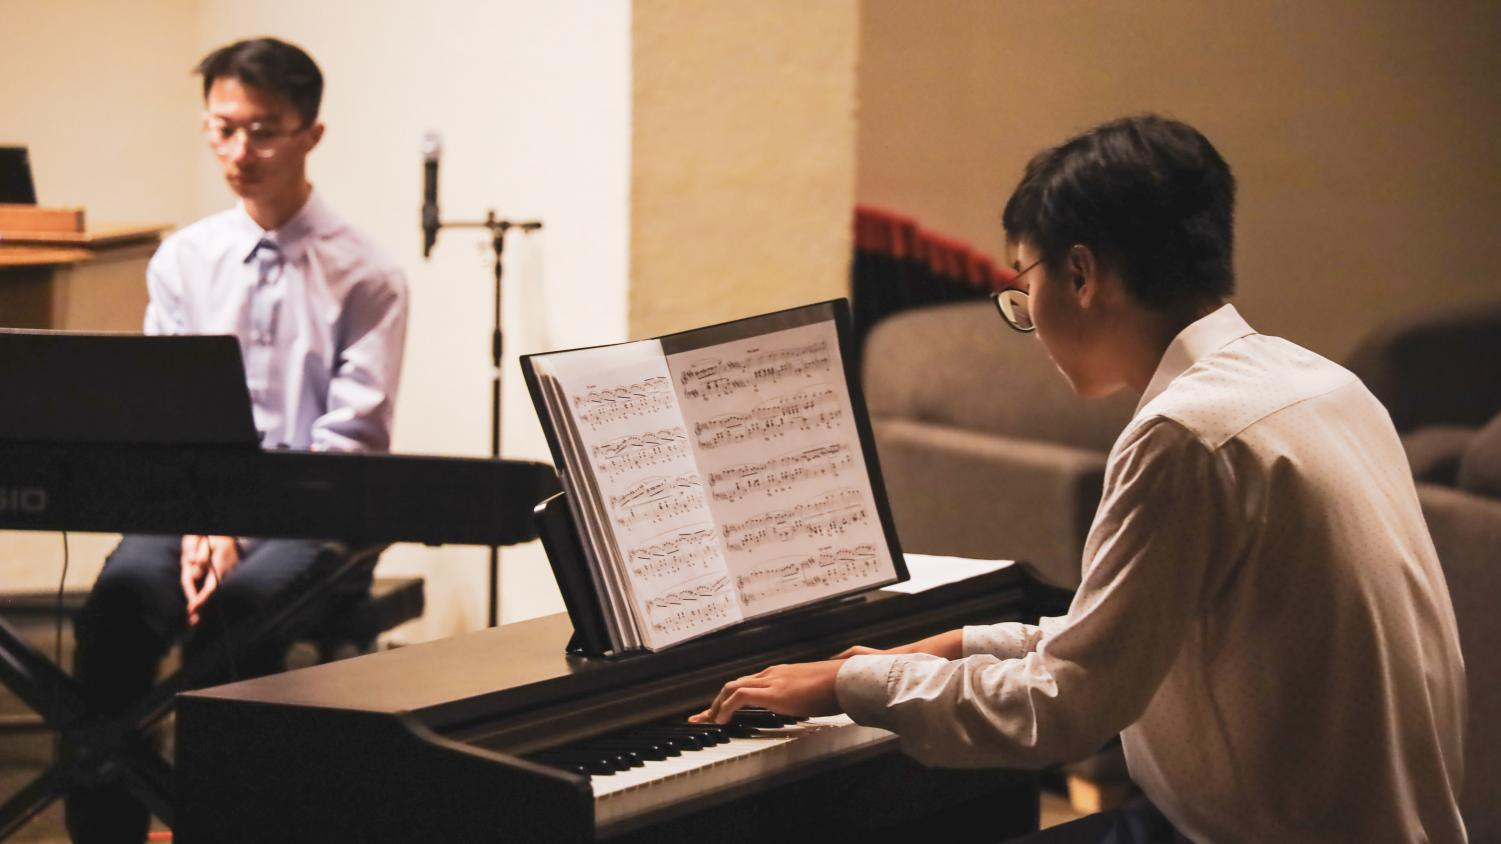 Senior Ryan Đoàn and sophomore Phillip Duan are playing a musical piece at the piano concert fundraiser. Fundraiser was held to purchase a new piano for the MacDuffie School.